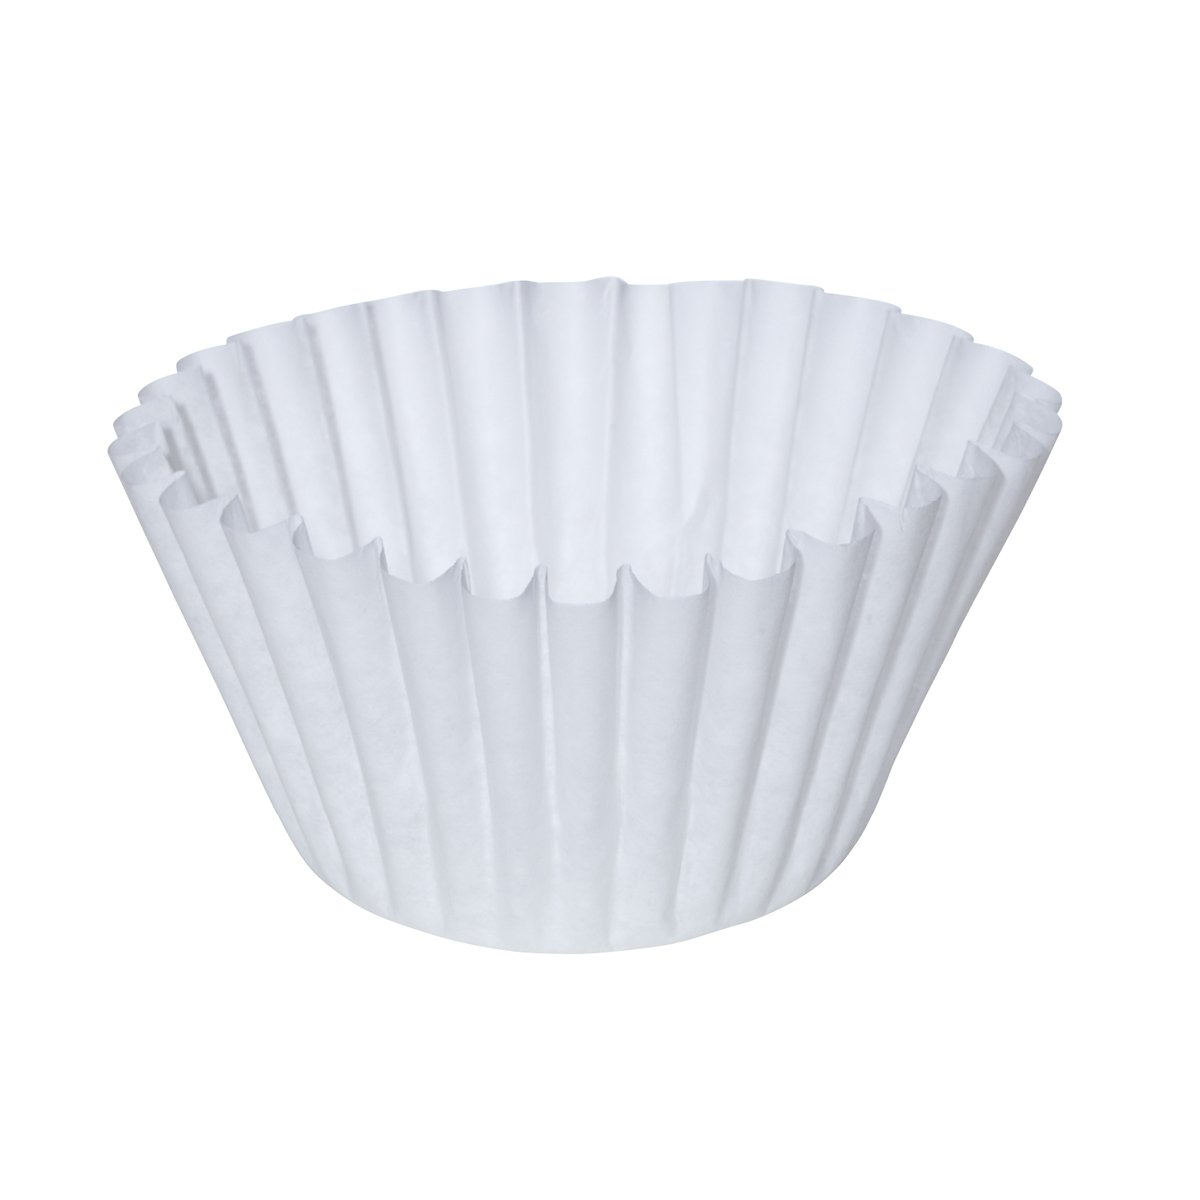 Wilbur Curtis Paper Filters 12.50 X 4.00, 500/Case - Commercial-Grade Paper Filters for Coffee Brewing - GEM-6 (Pack of 500)